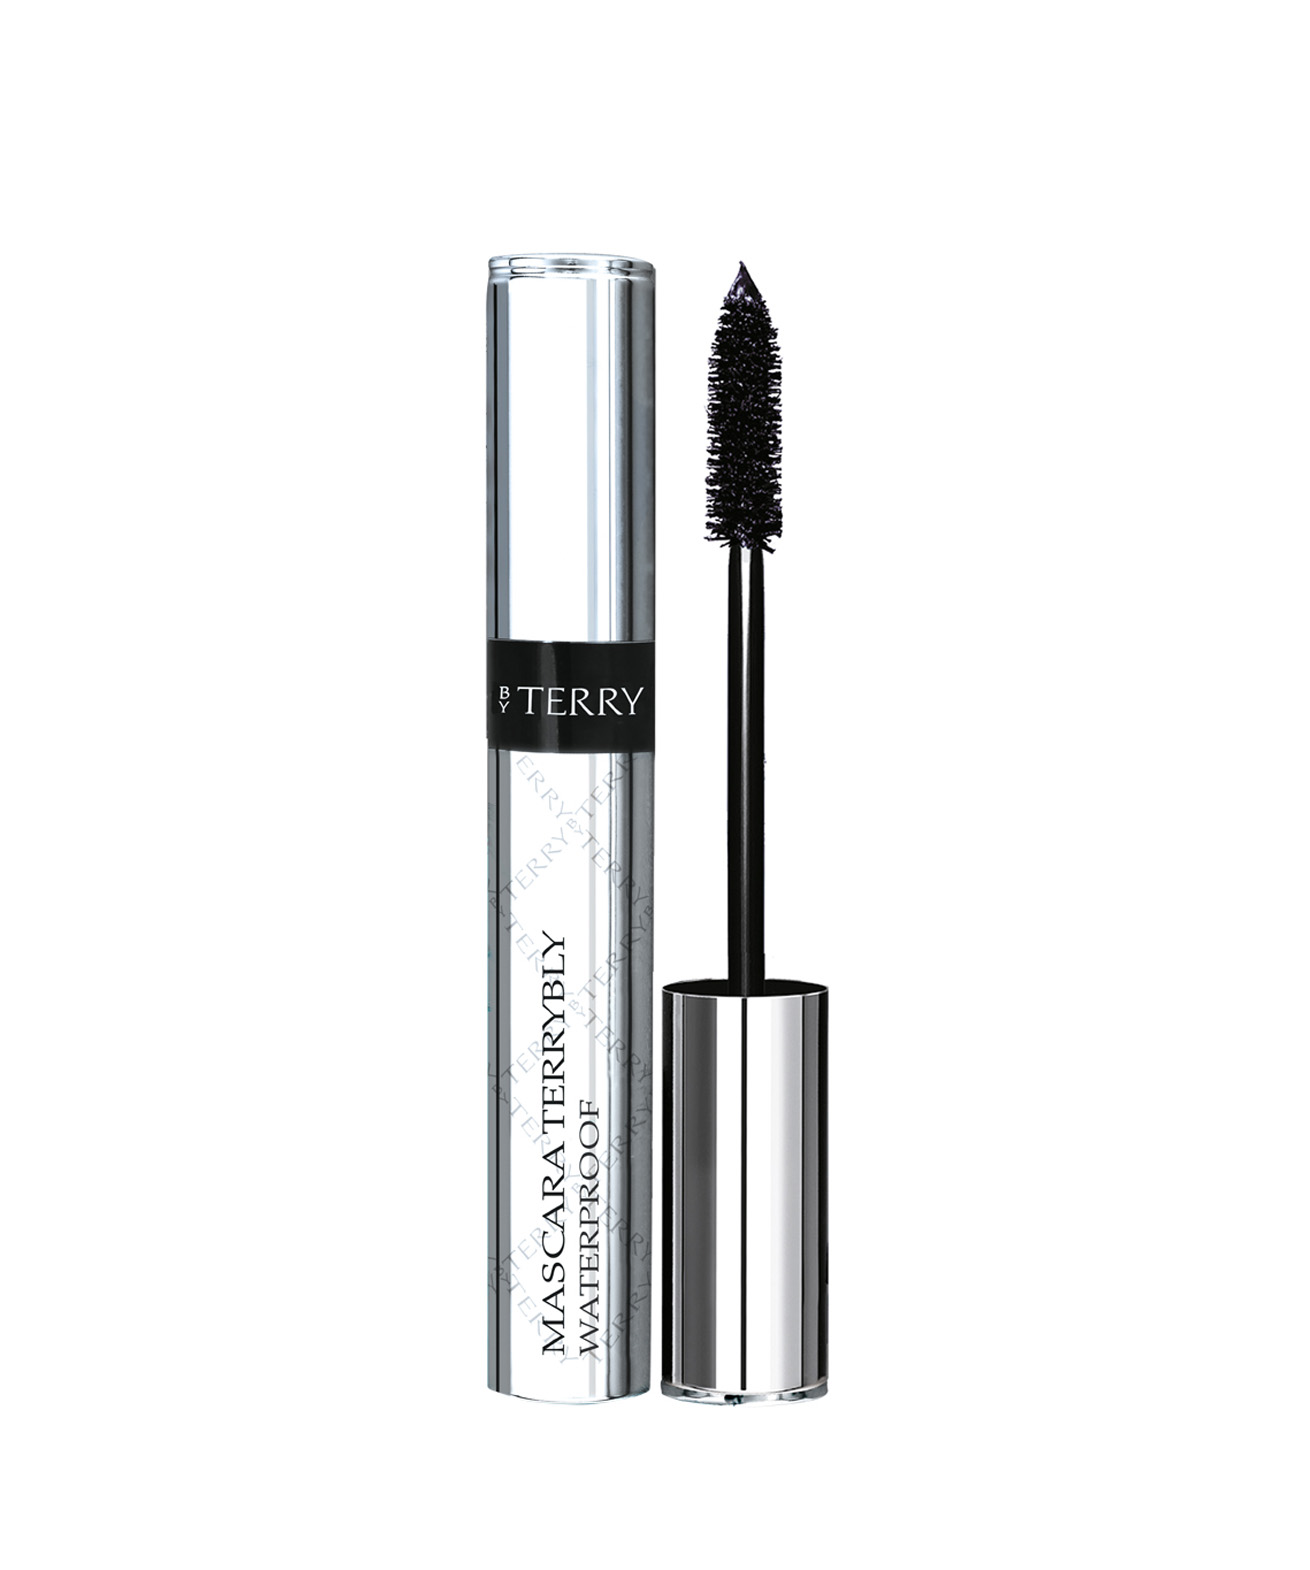 2-Mascara-Terrybly-Waterproof-Linea-trucco-di-lusso-By-Terry-Dispar-SpA.jpg